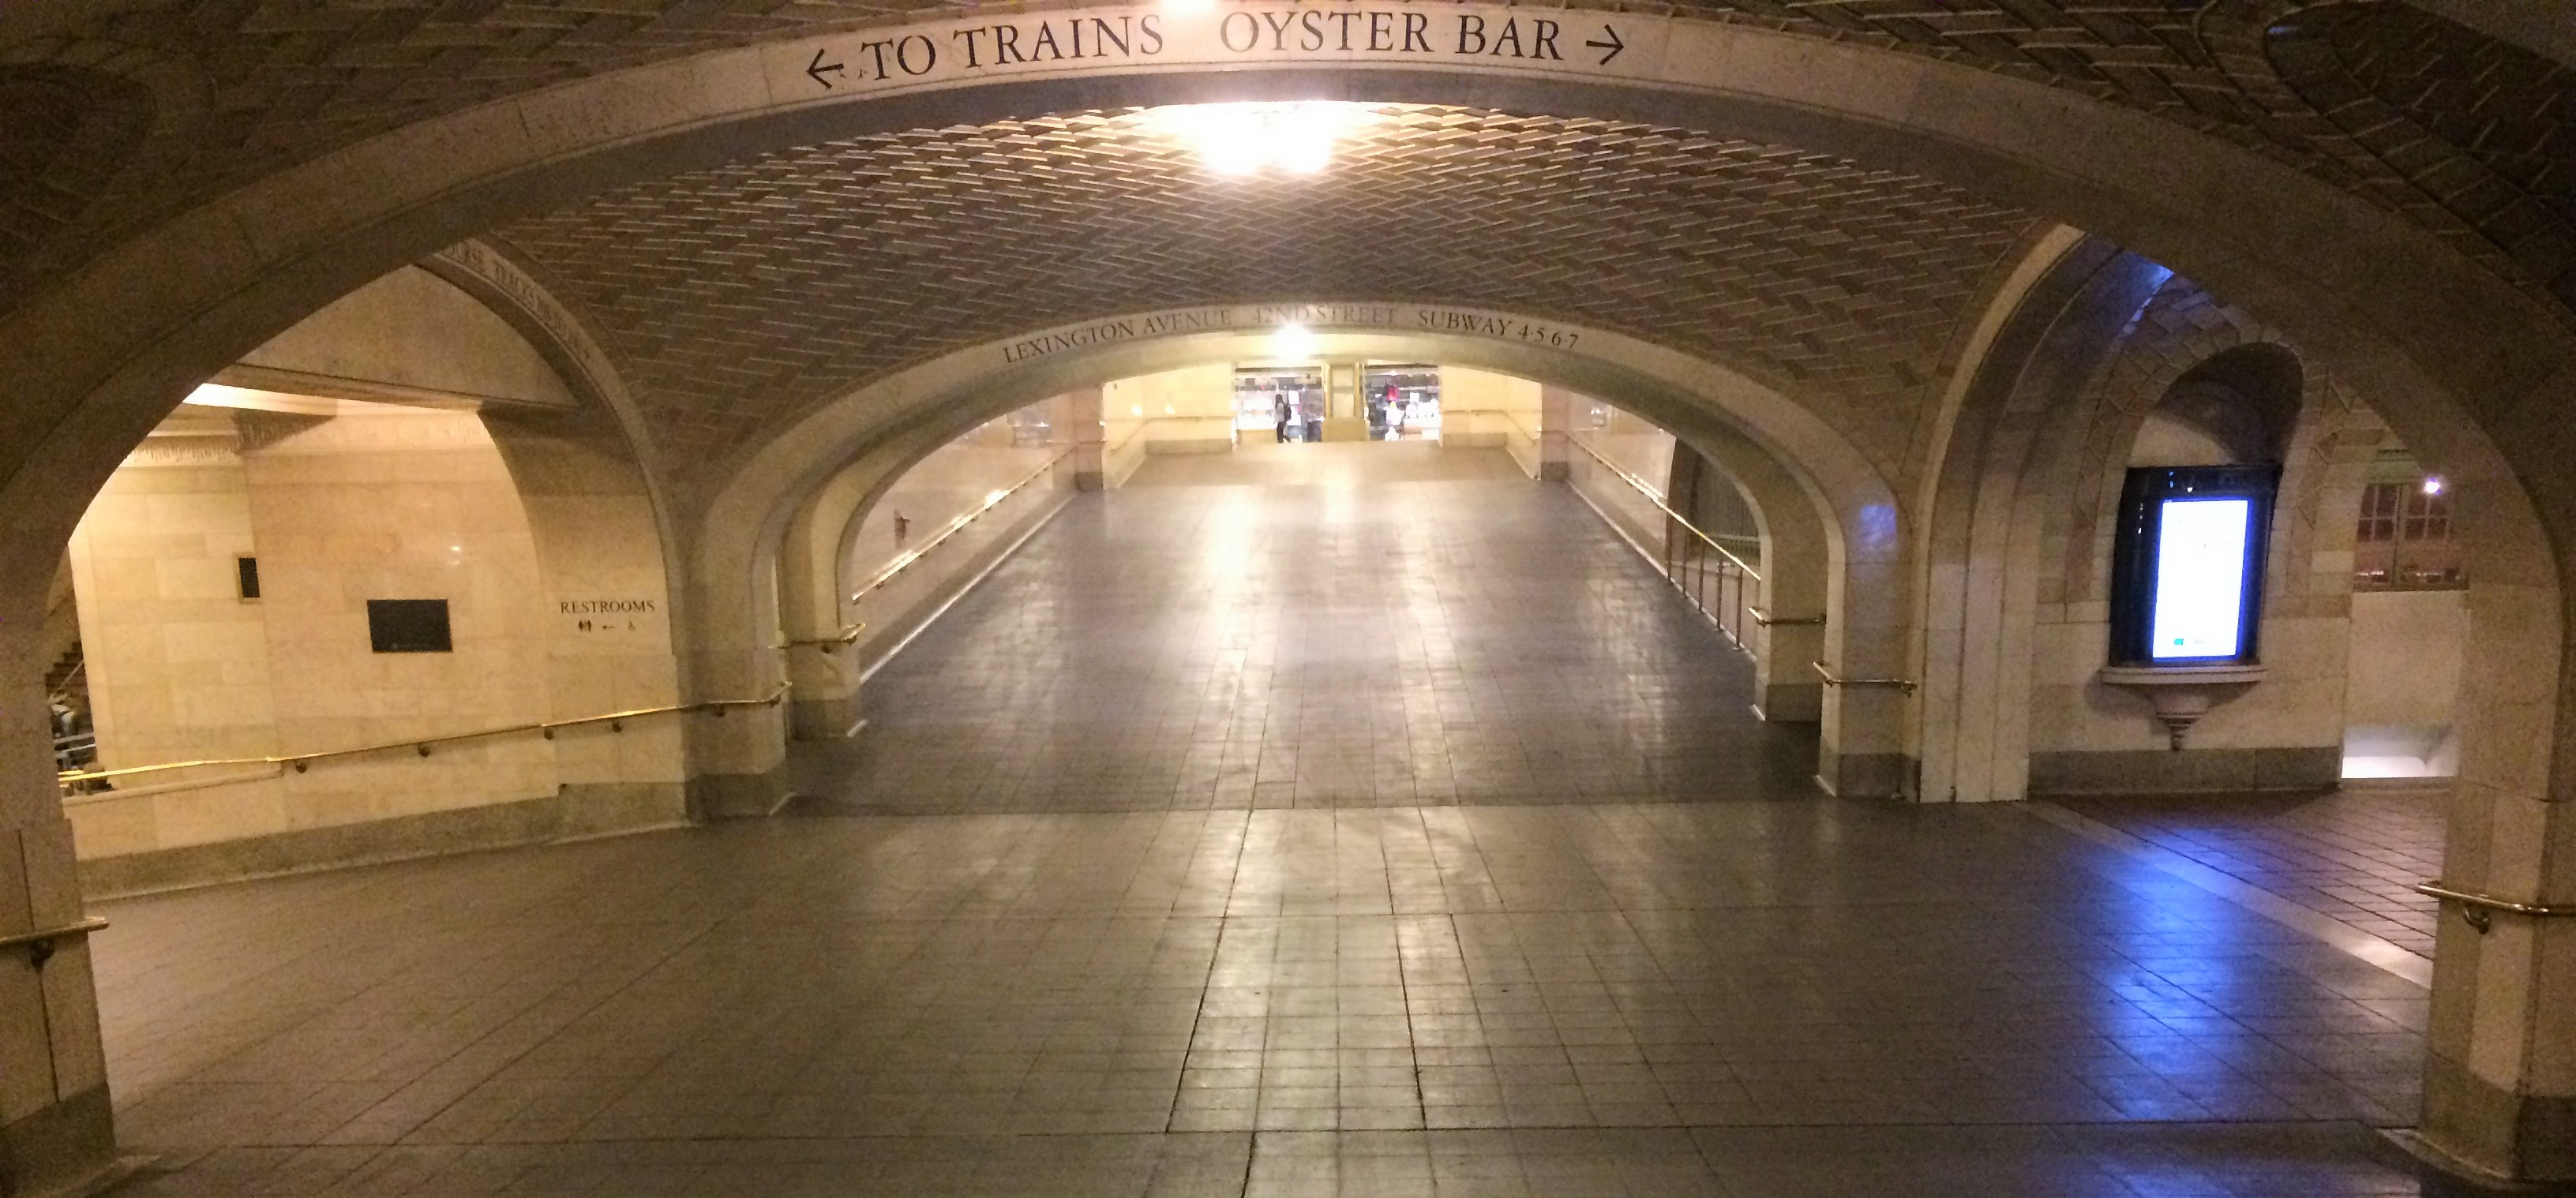 The whispering gallery in Grand Central Terminal. How surprising to find it completely empty.